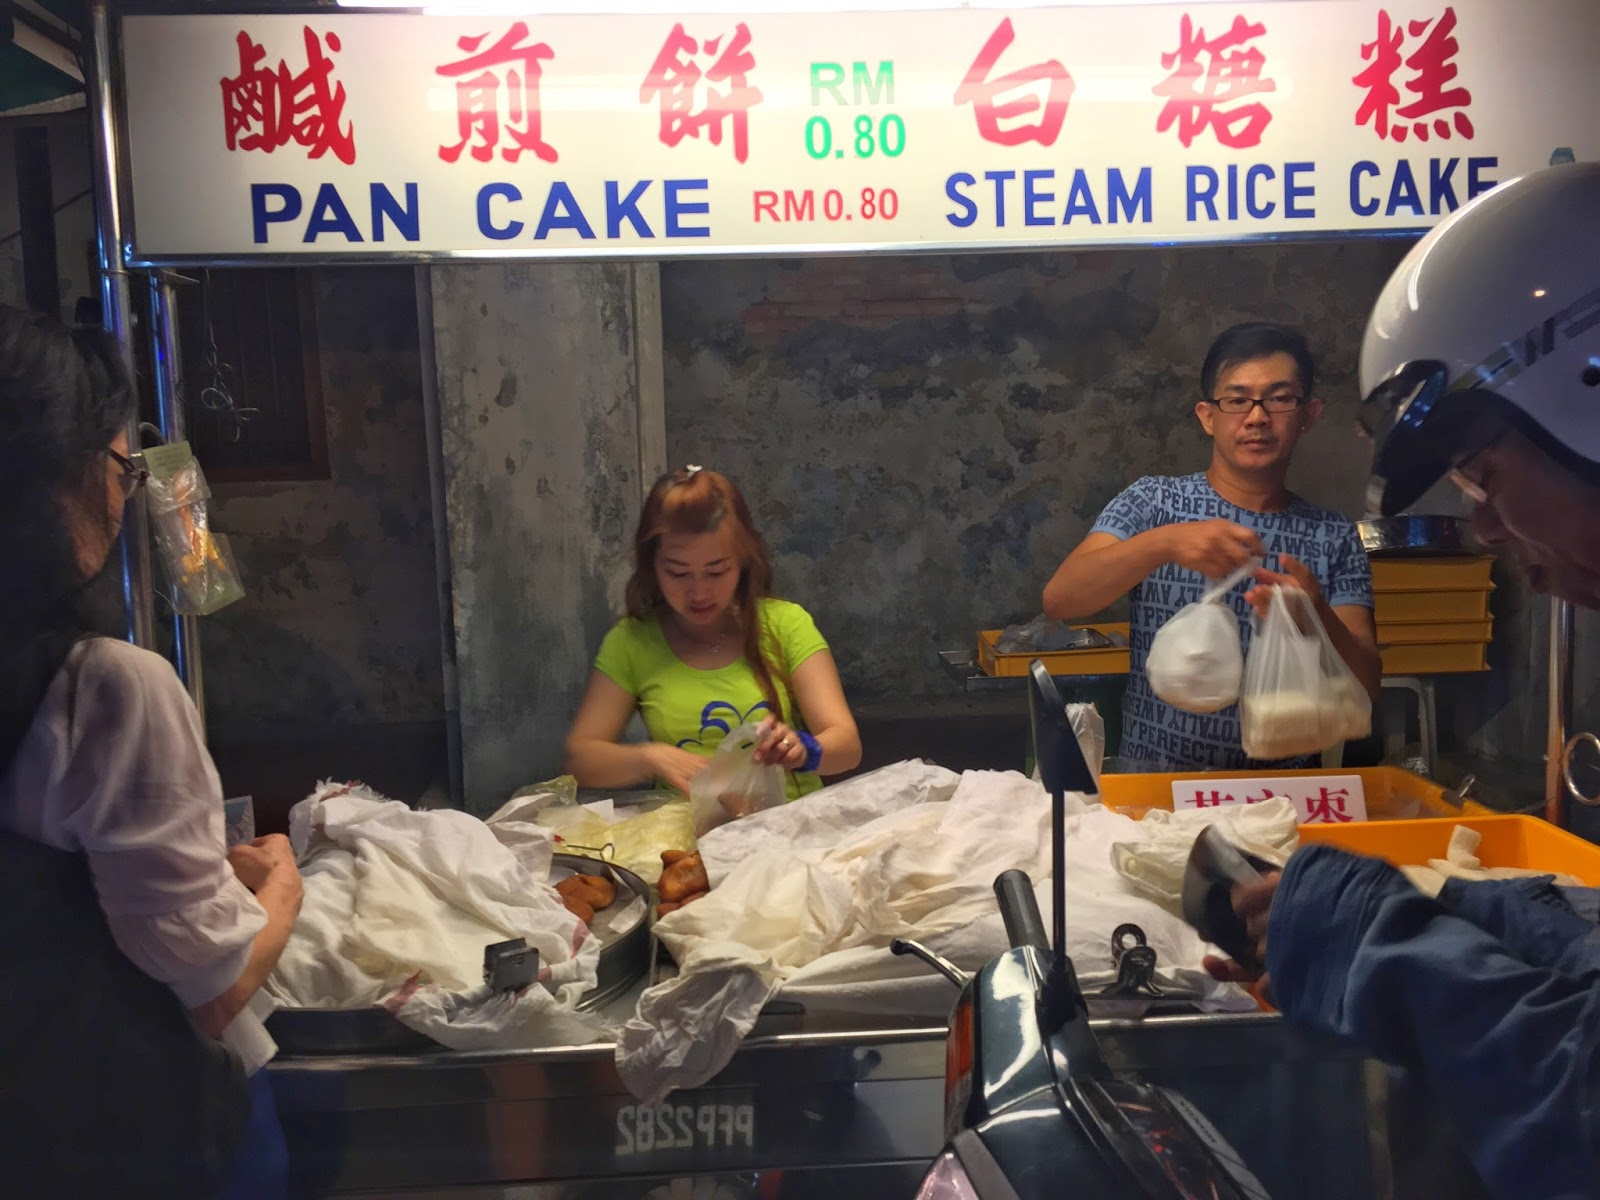 Penang Street Food - Pancake and Steam Rice Cake